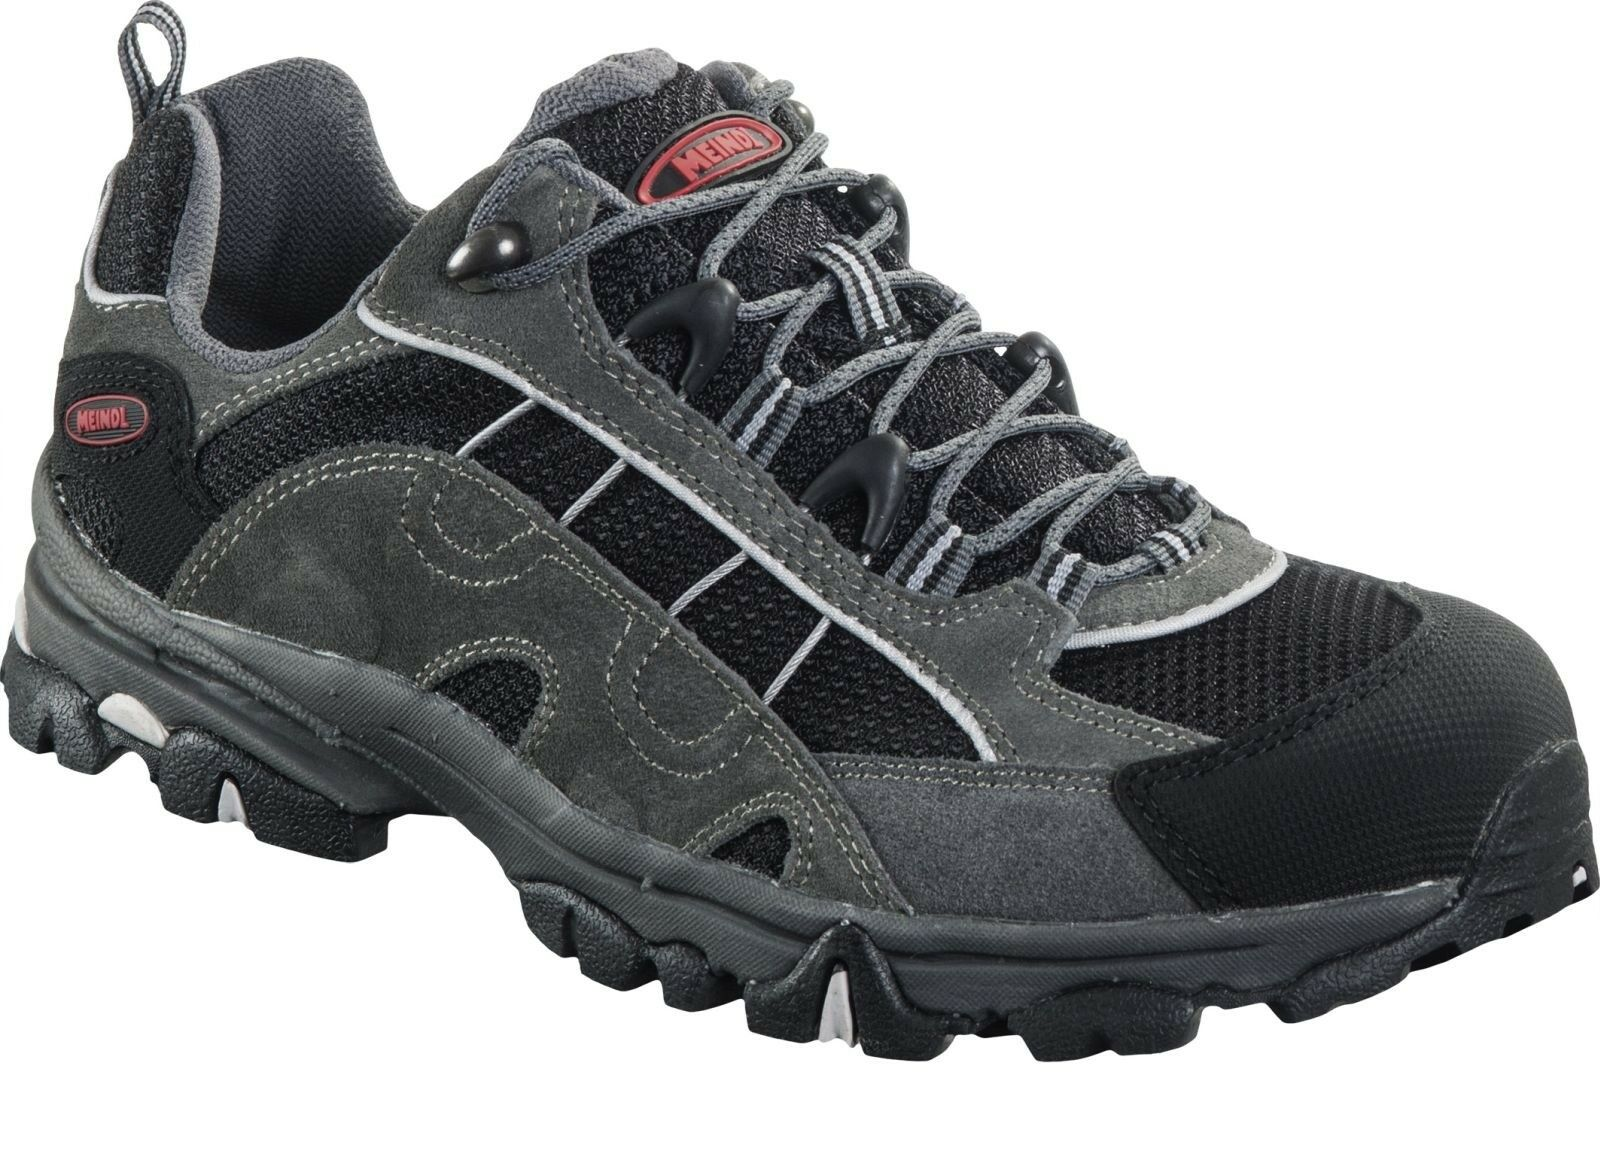 Meindl Herren Walking Hiking Schuh Magic Men 2.0 anthrazite rot